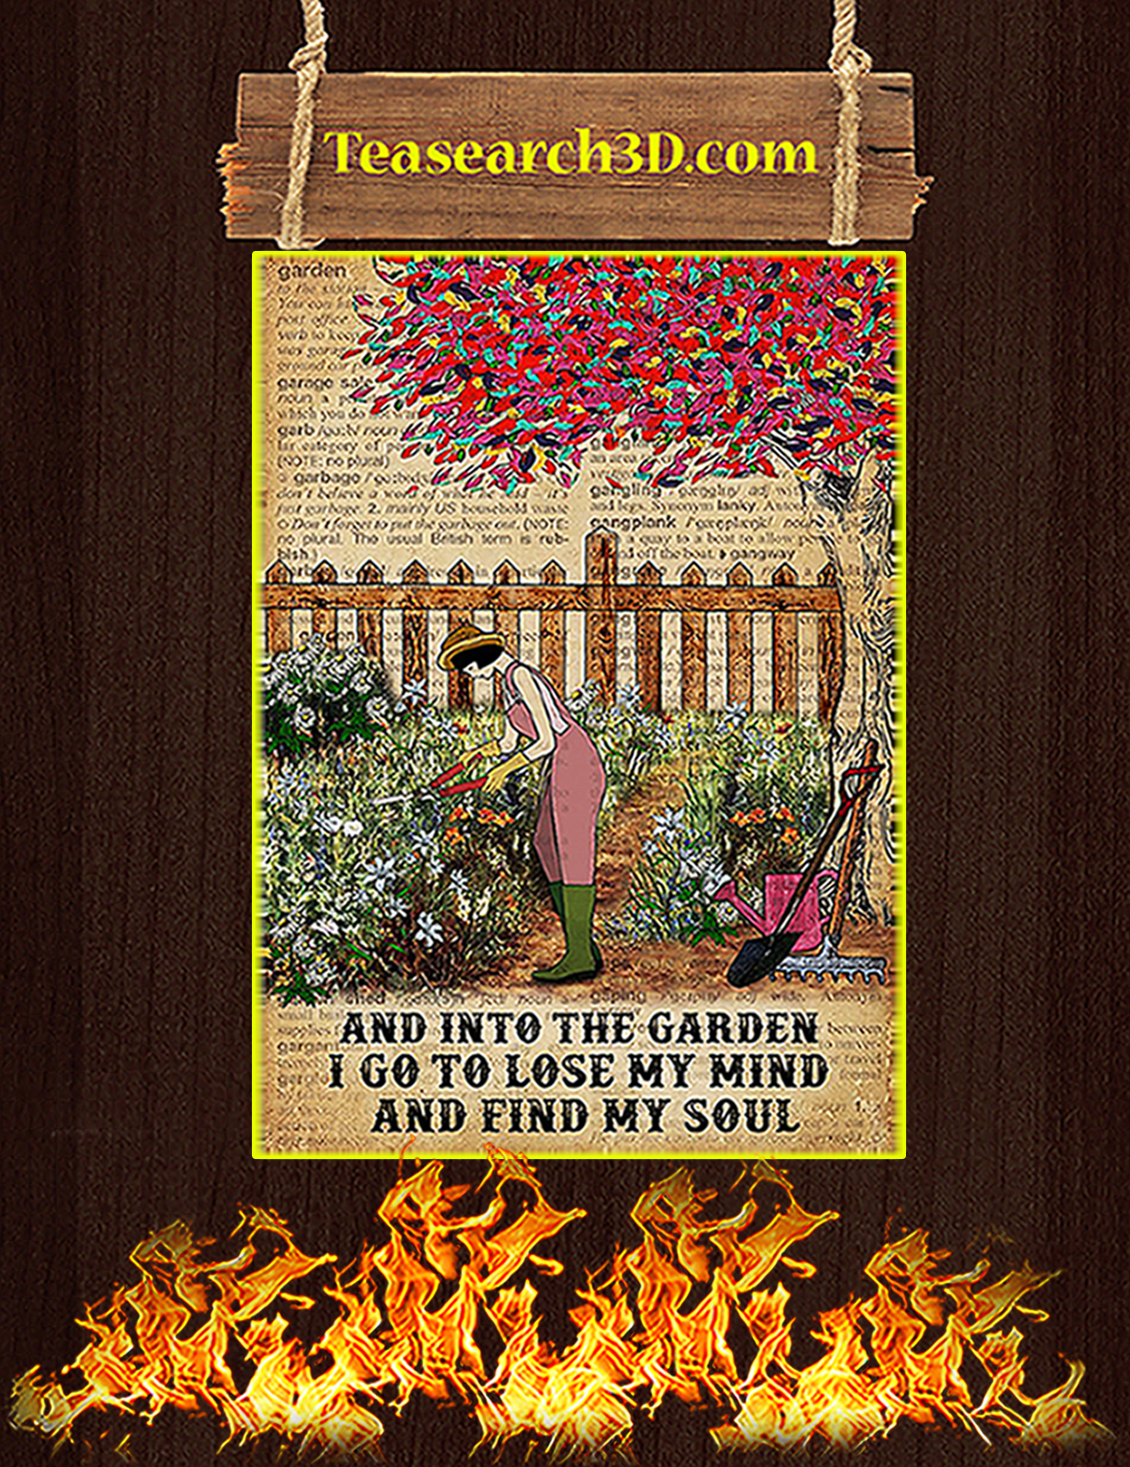 Dictionary And into the garden I go to lose my mind and find my soul poster A3